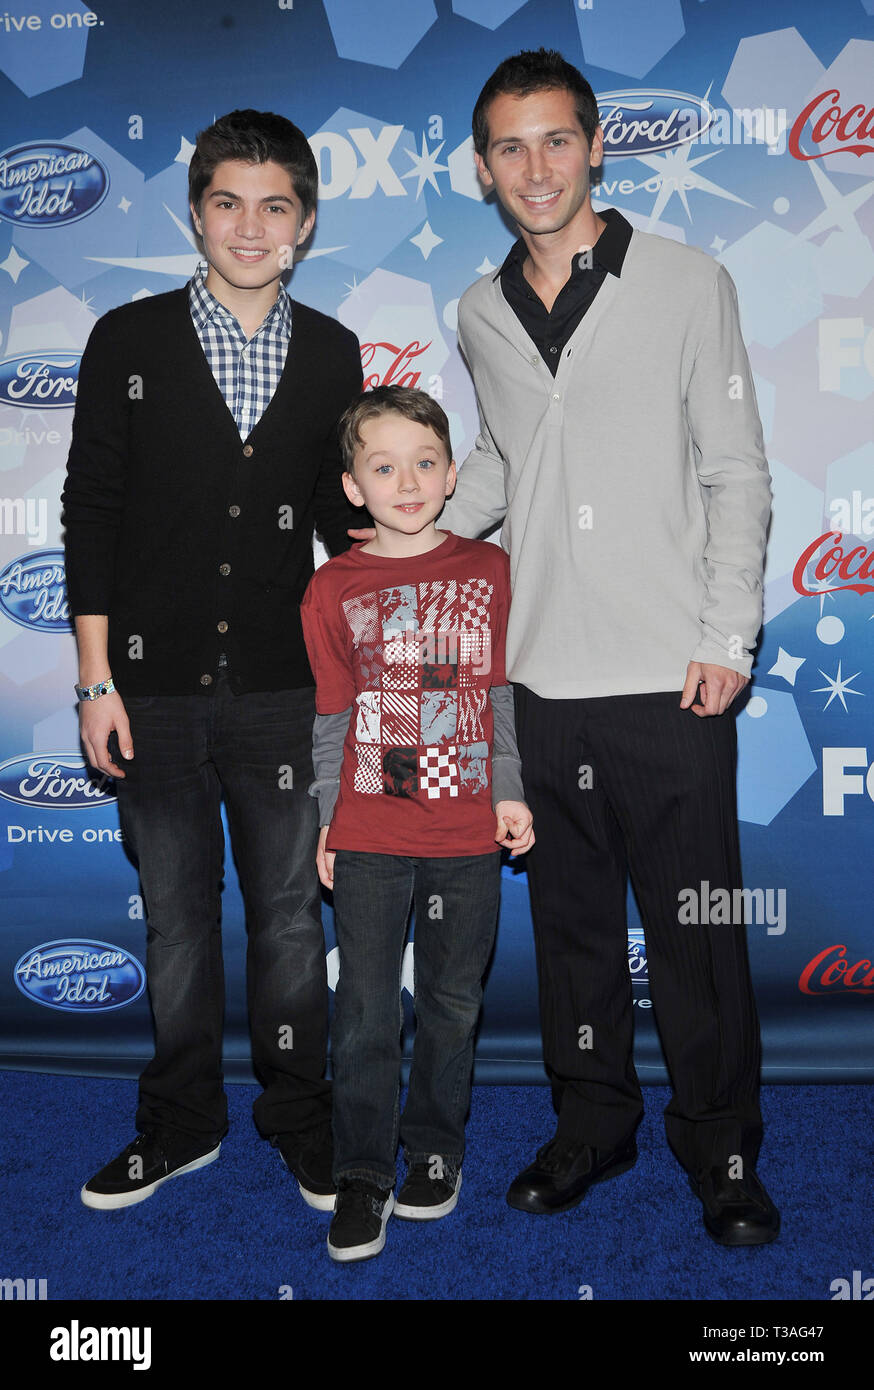 Matthew Levy Benjamin Stockham Justin Berfield 20 American Idol Top 12 Party At Industry Club In Los Angeles Matthew Levy Benjamin Stockham Justin Berfield 20 Event In Hollywood Life California Red